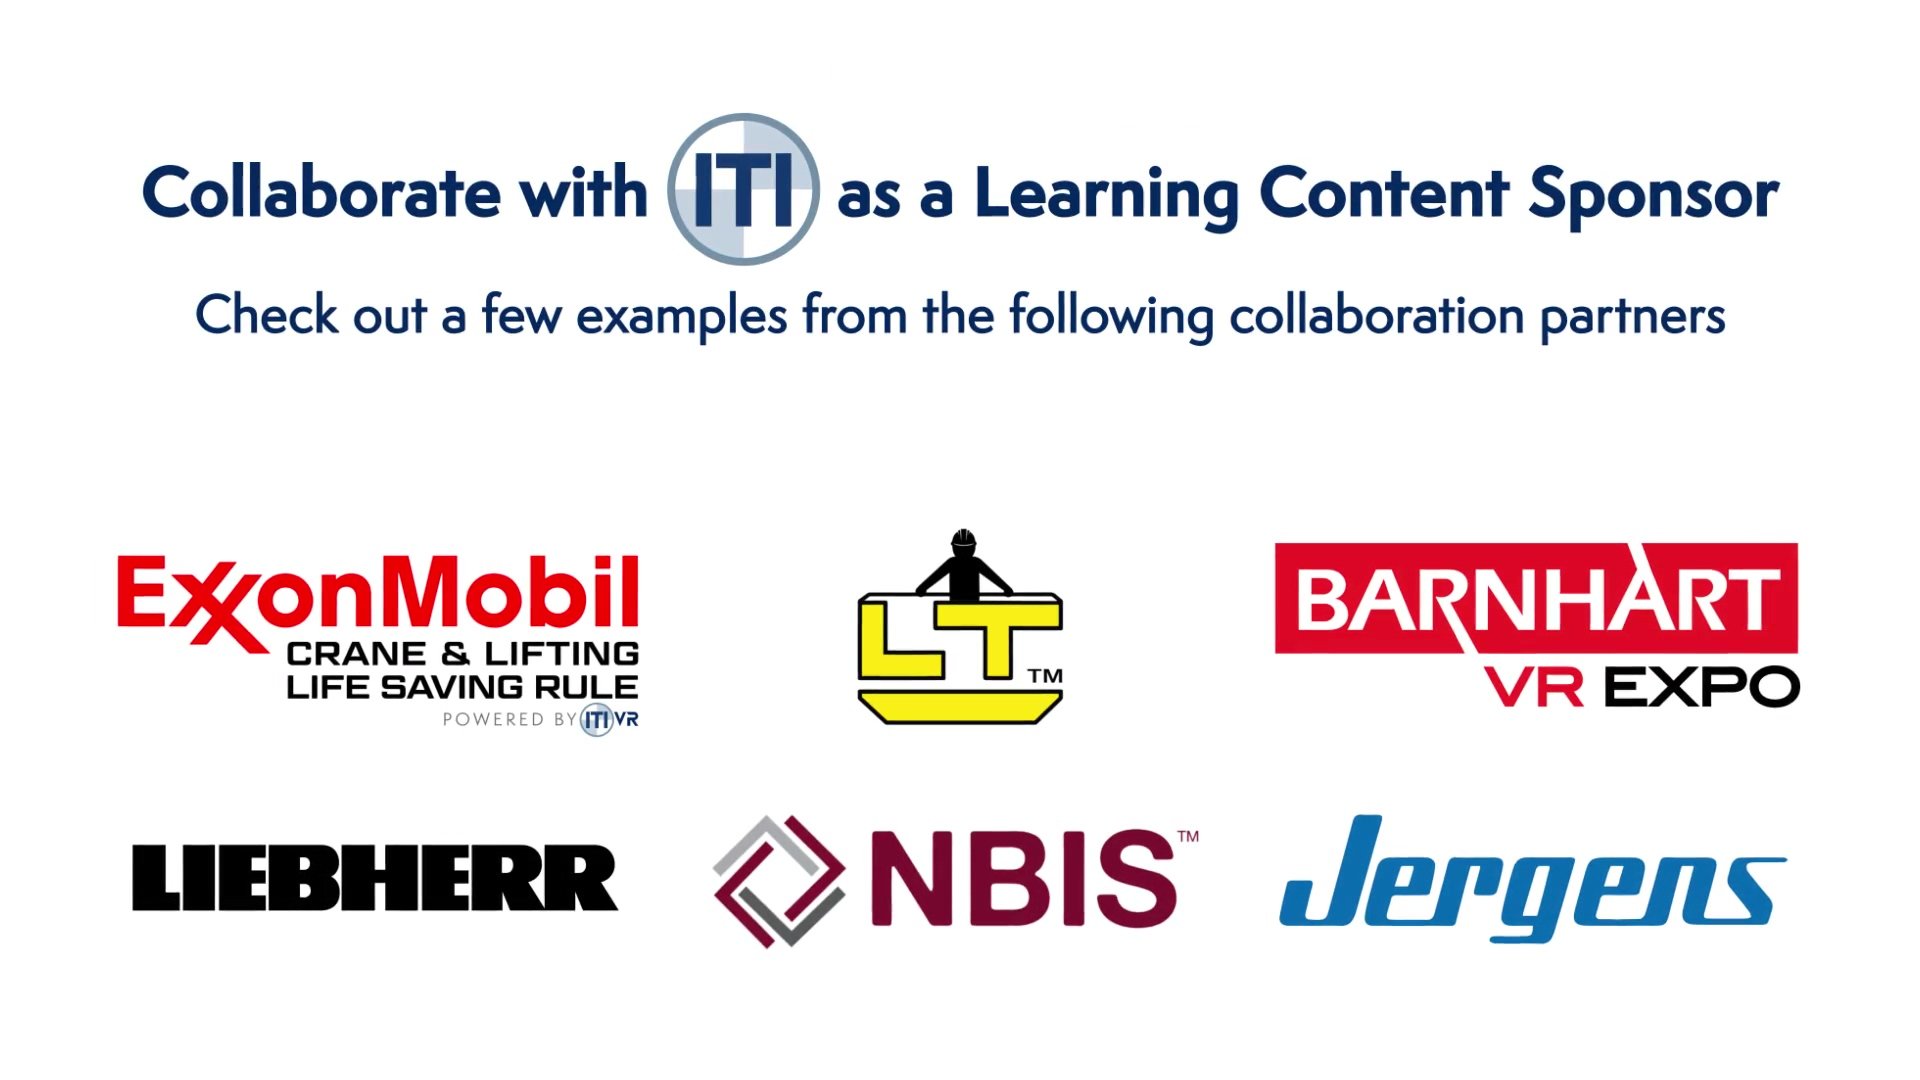 Collaborate with ITI as a Learning Content Sponsor-051921-02